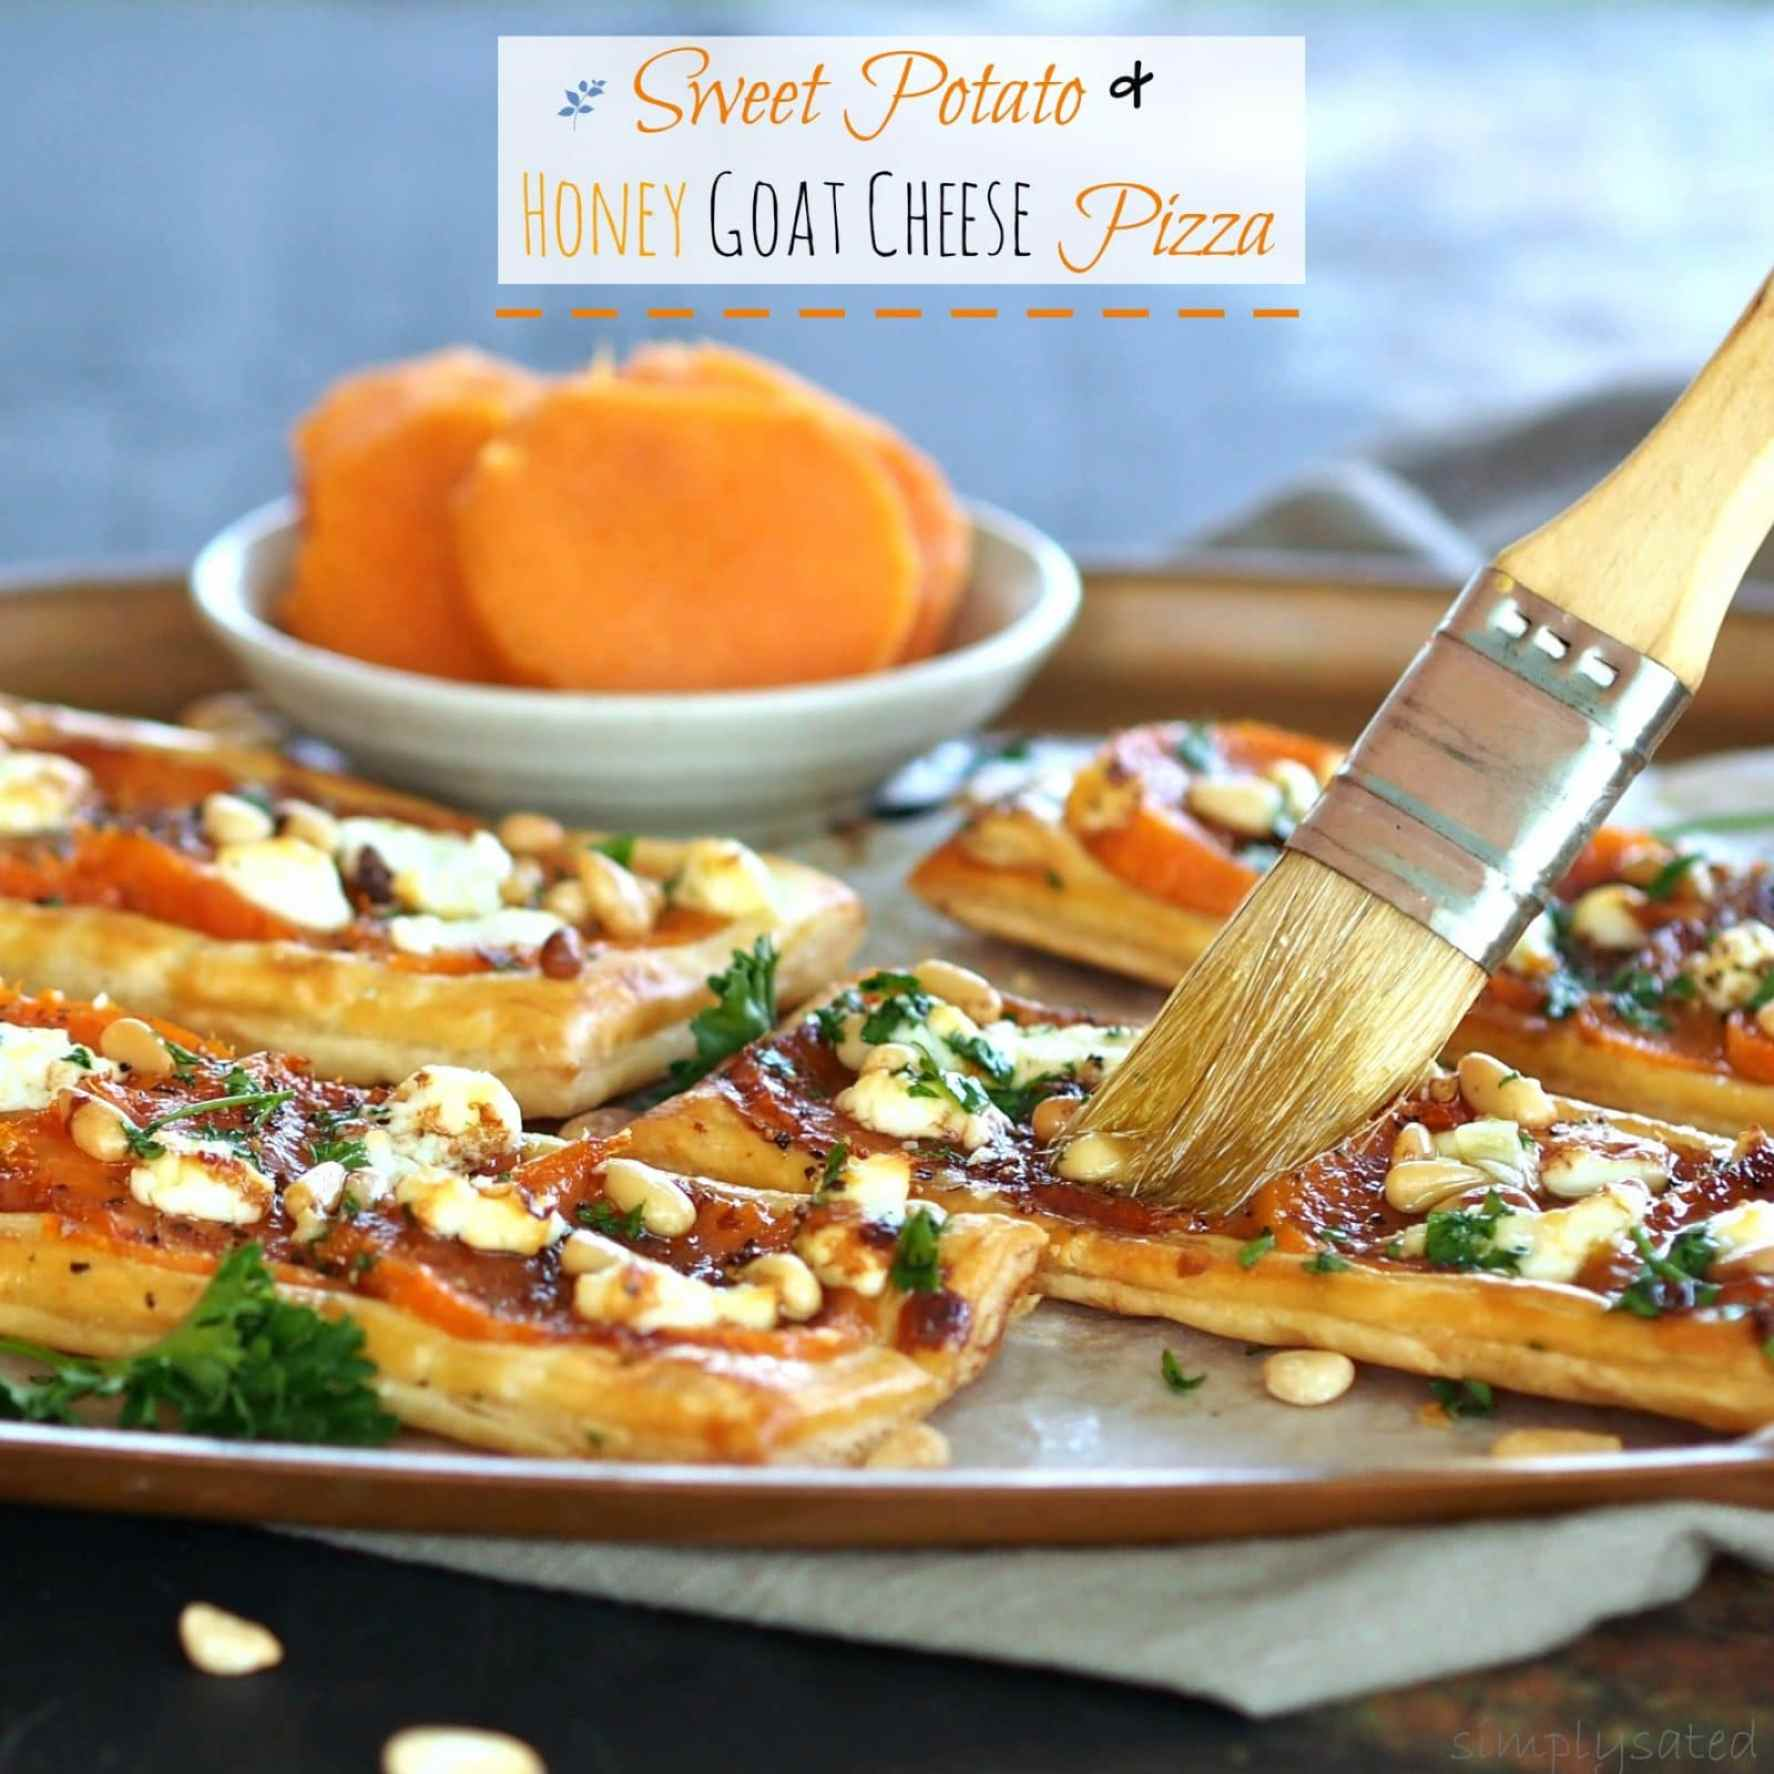 Sweet Potato & Honey Goat Cheese Pizza